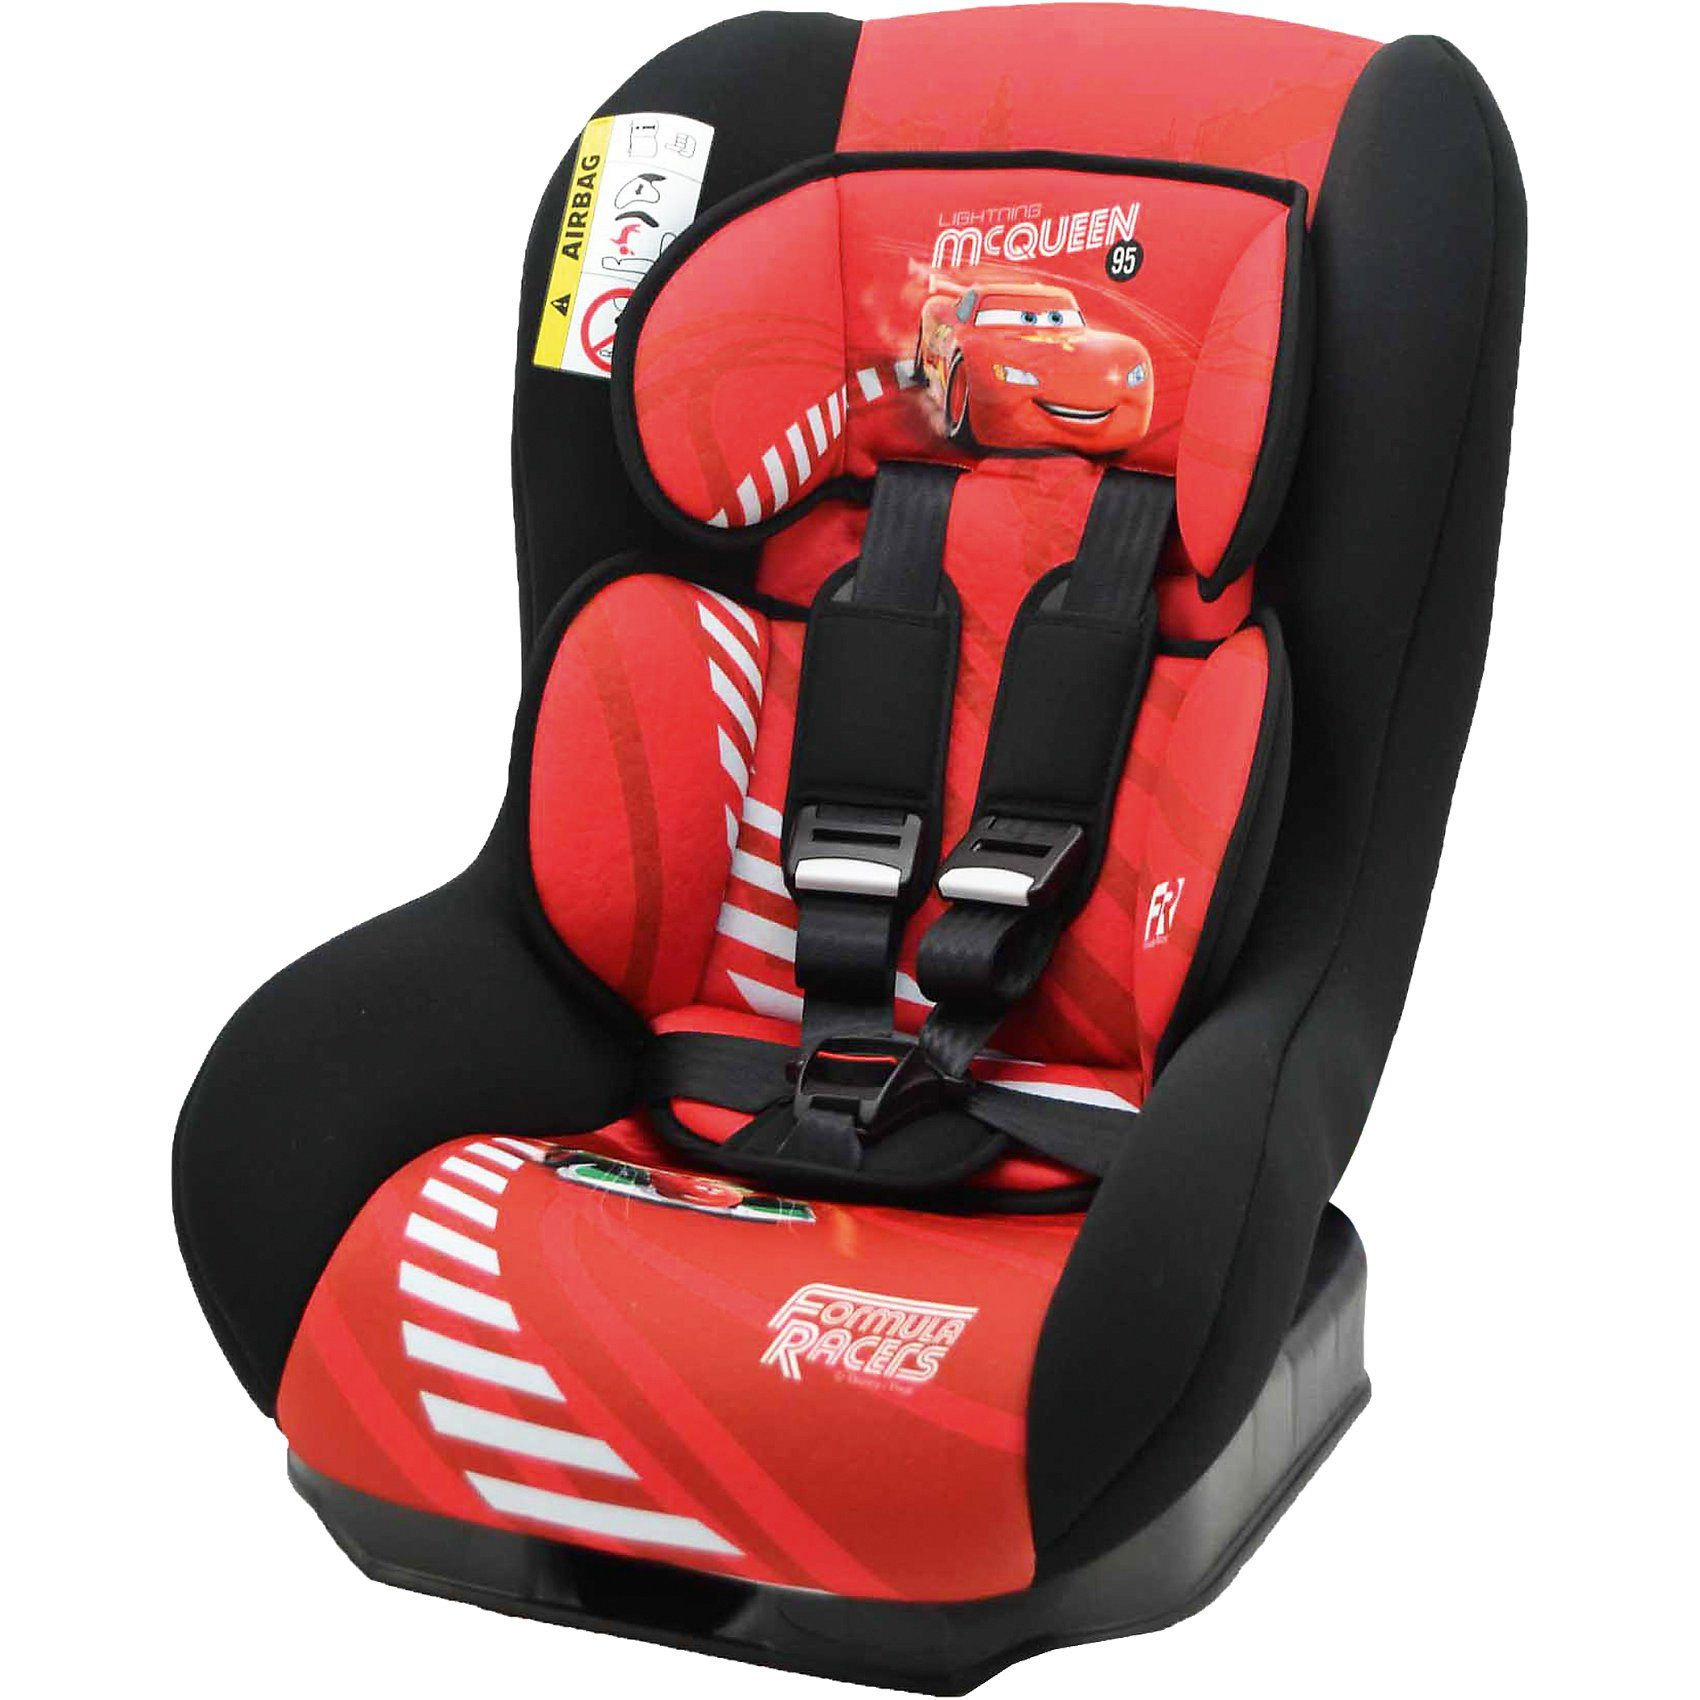 Osann Auto-Kindersitz Safety Plus NT Cars McQueen, 2017